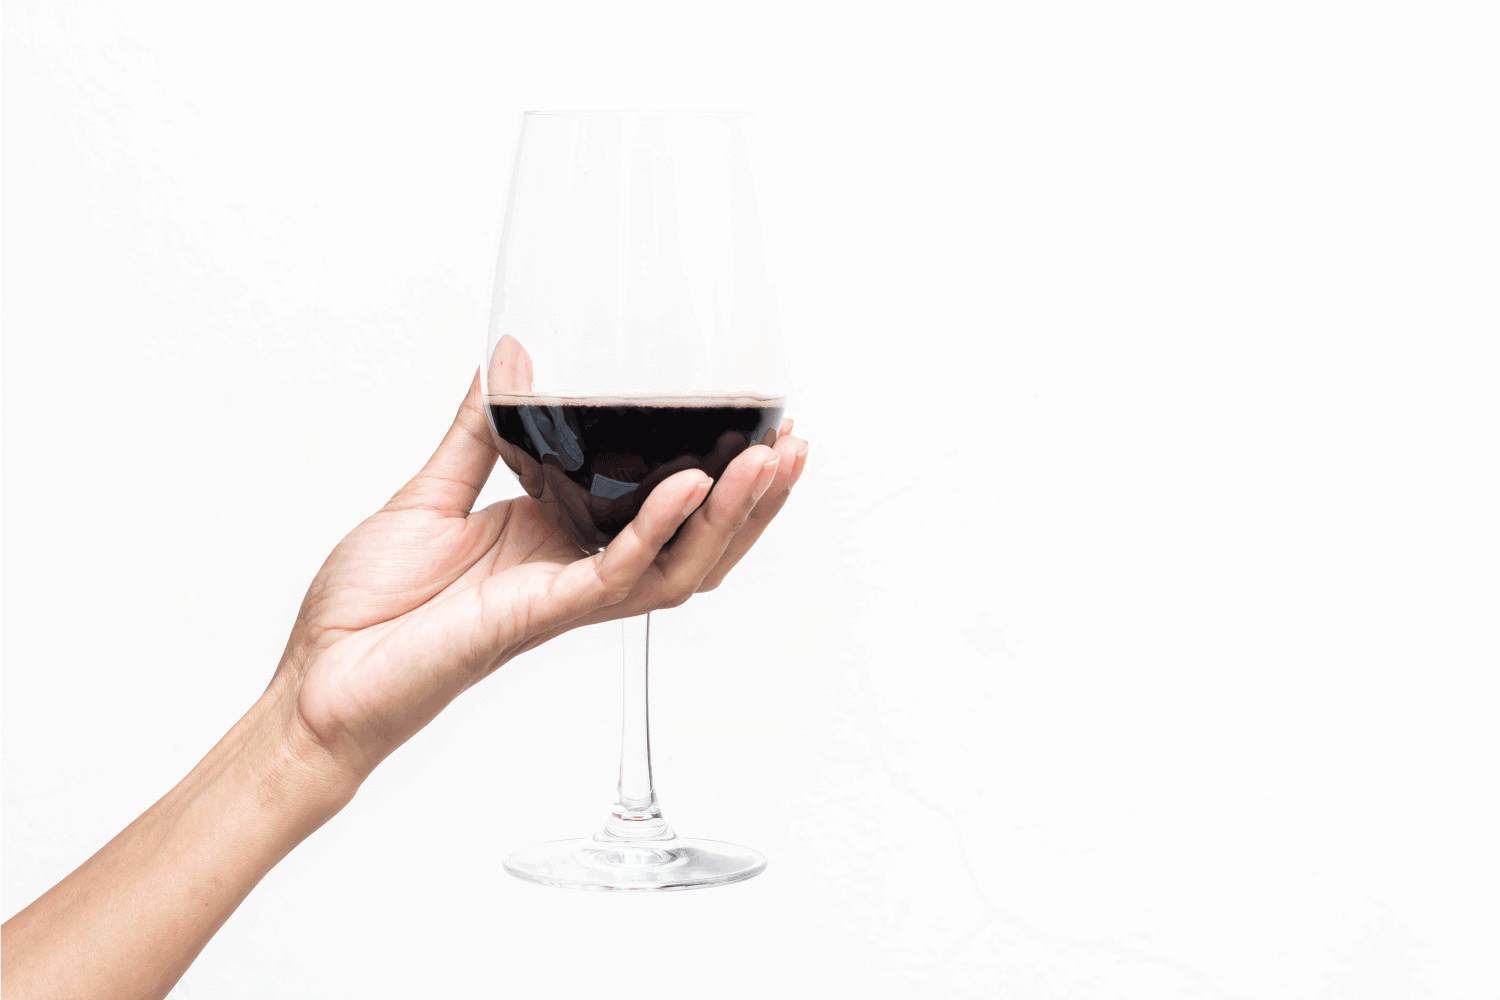 Hand holding a glass of wine